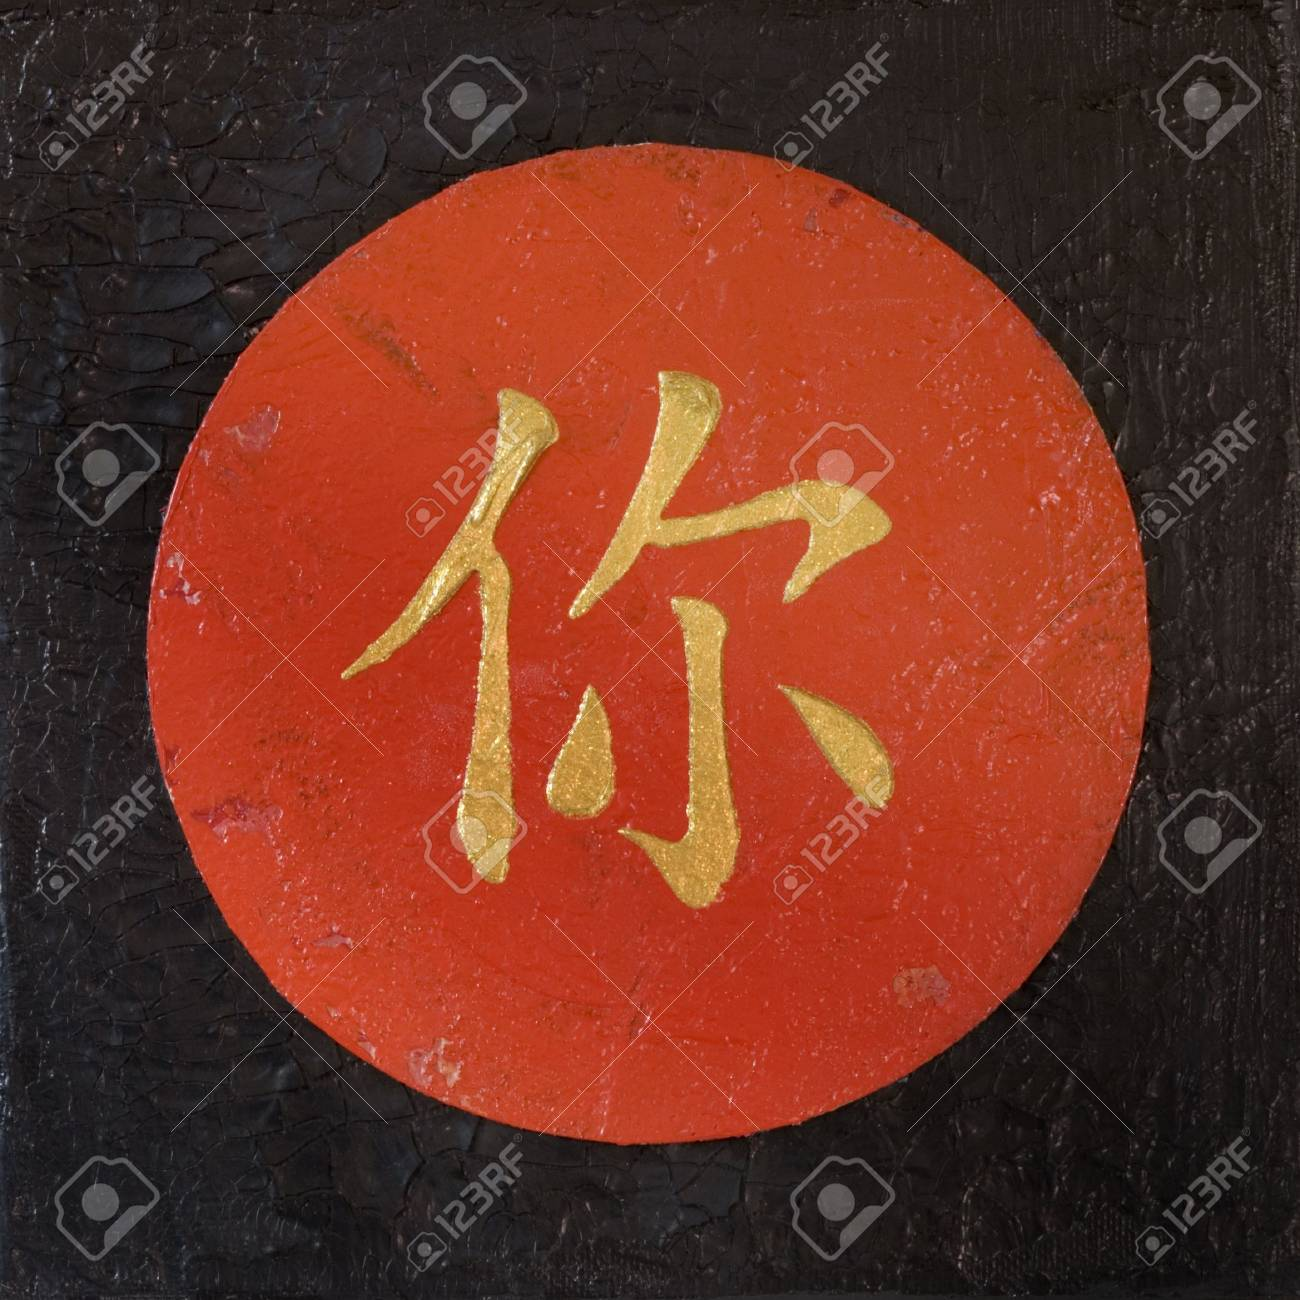 Chinese symbol for you images symbol and sign ideas collage with chinese symbol for you artwork is created and collage with chinese symbol for you buycottarizona